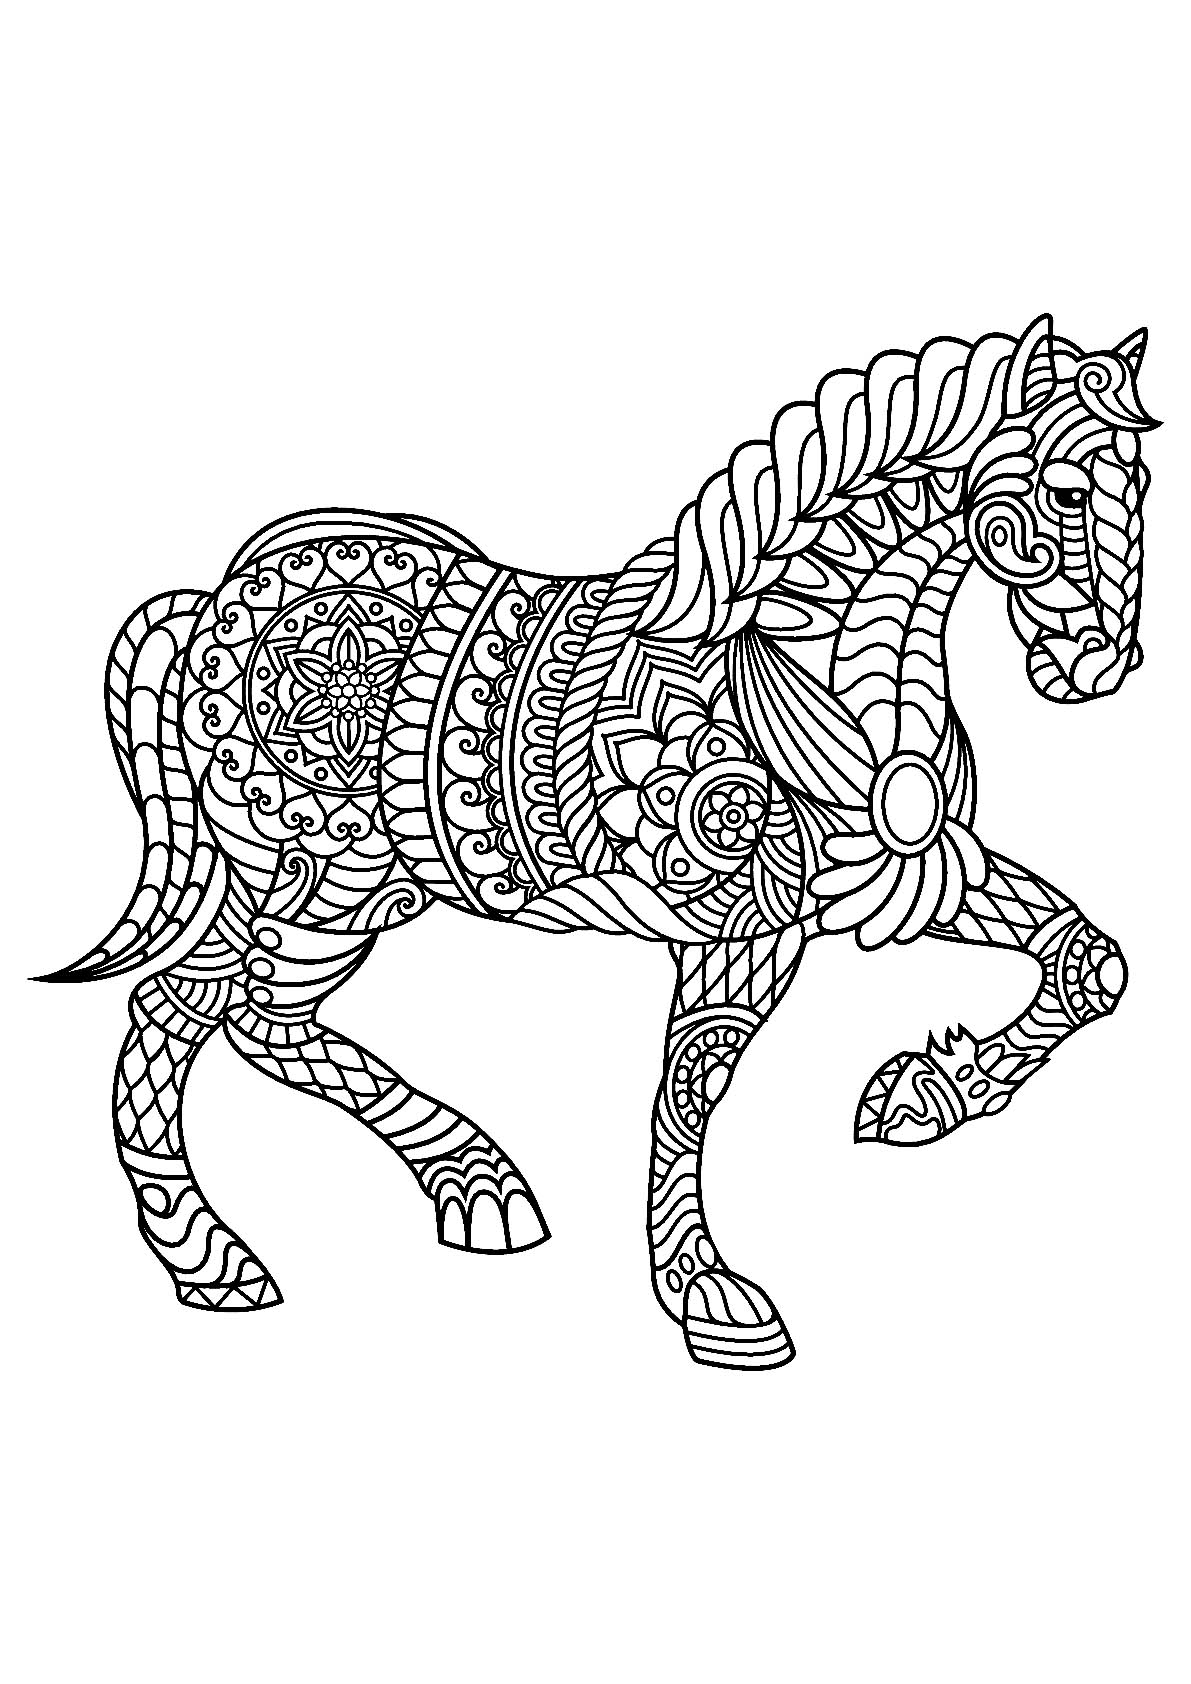 horse pages to color 30 best horse coloring pages ideas we need fun color pages to horse